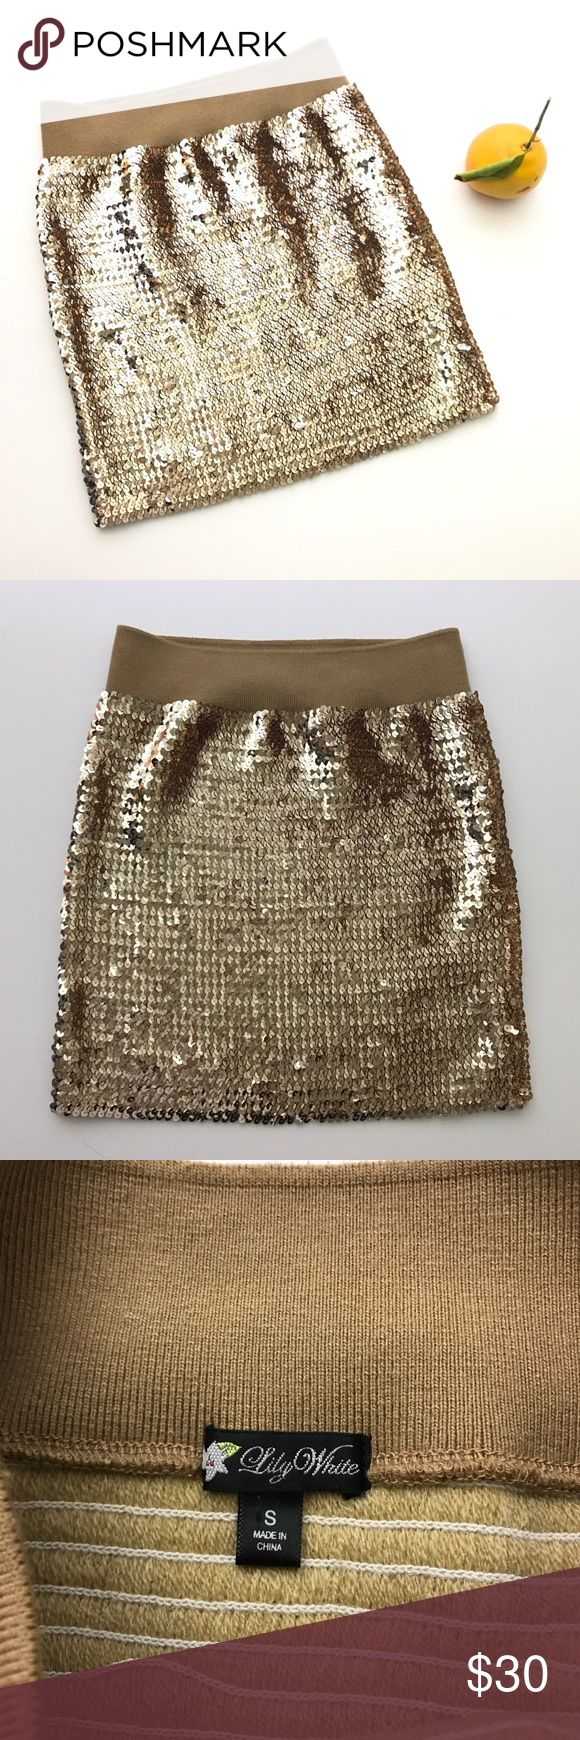 Gold Sequin Body Con Skirt S Lily White - Gold Sequined BodyCon Mini Skirt - Tag says size small, but it is ultra stretchy and could definitely fit a Medium! 🎉 great gently preowned condition- no missing sequins. Elastic waistband and stretchy throughout. Please see photo of drawn diagram for approximate measurements. Thanks! Lily White Skirts Mini